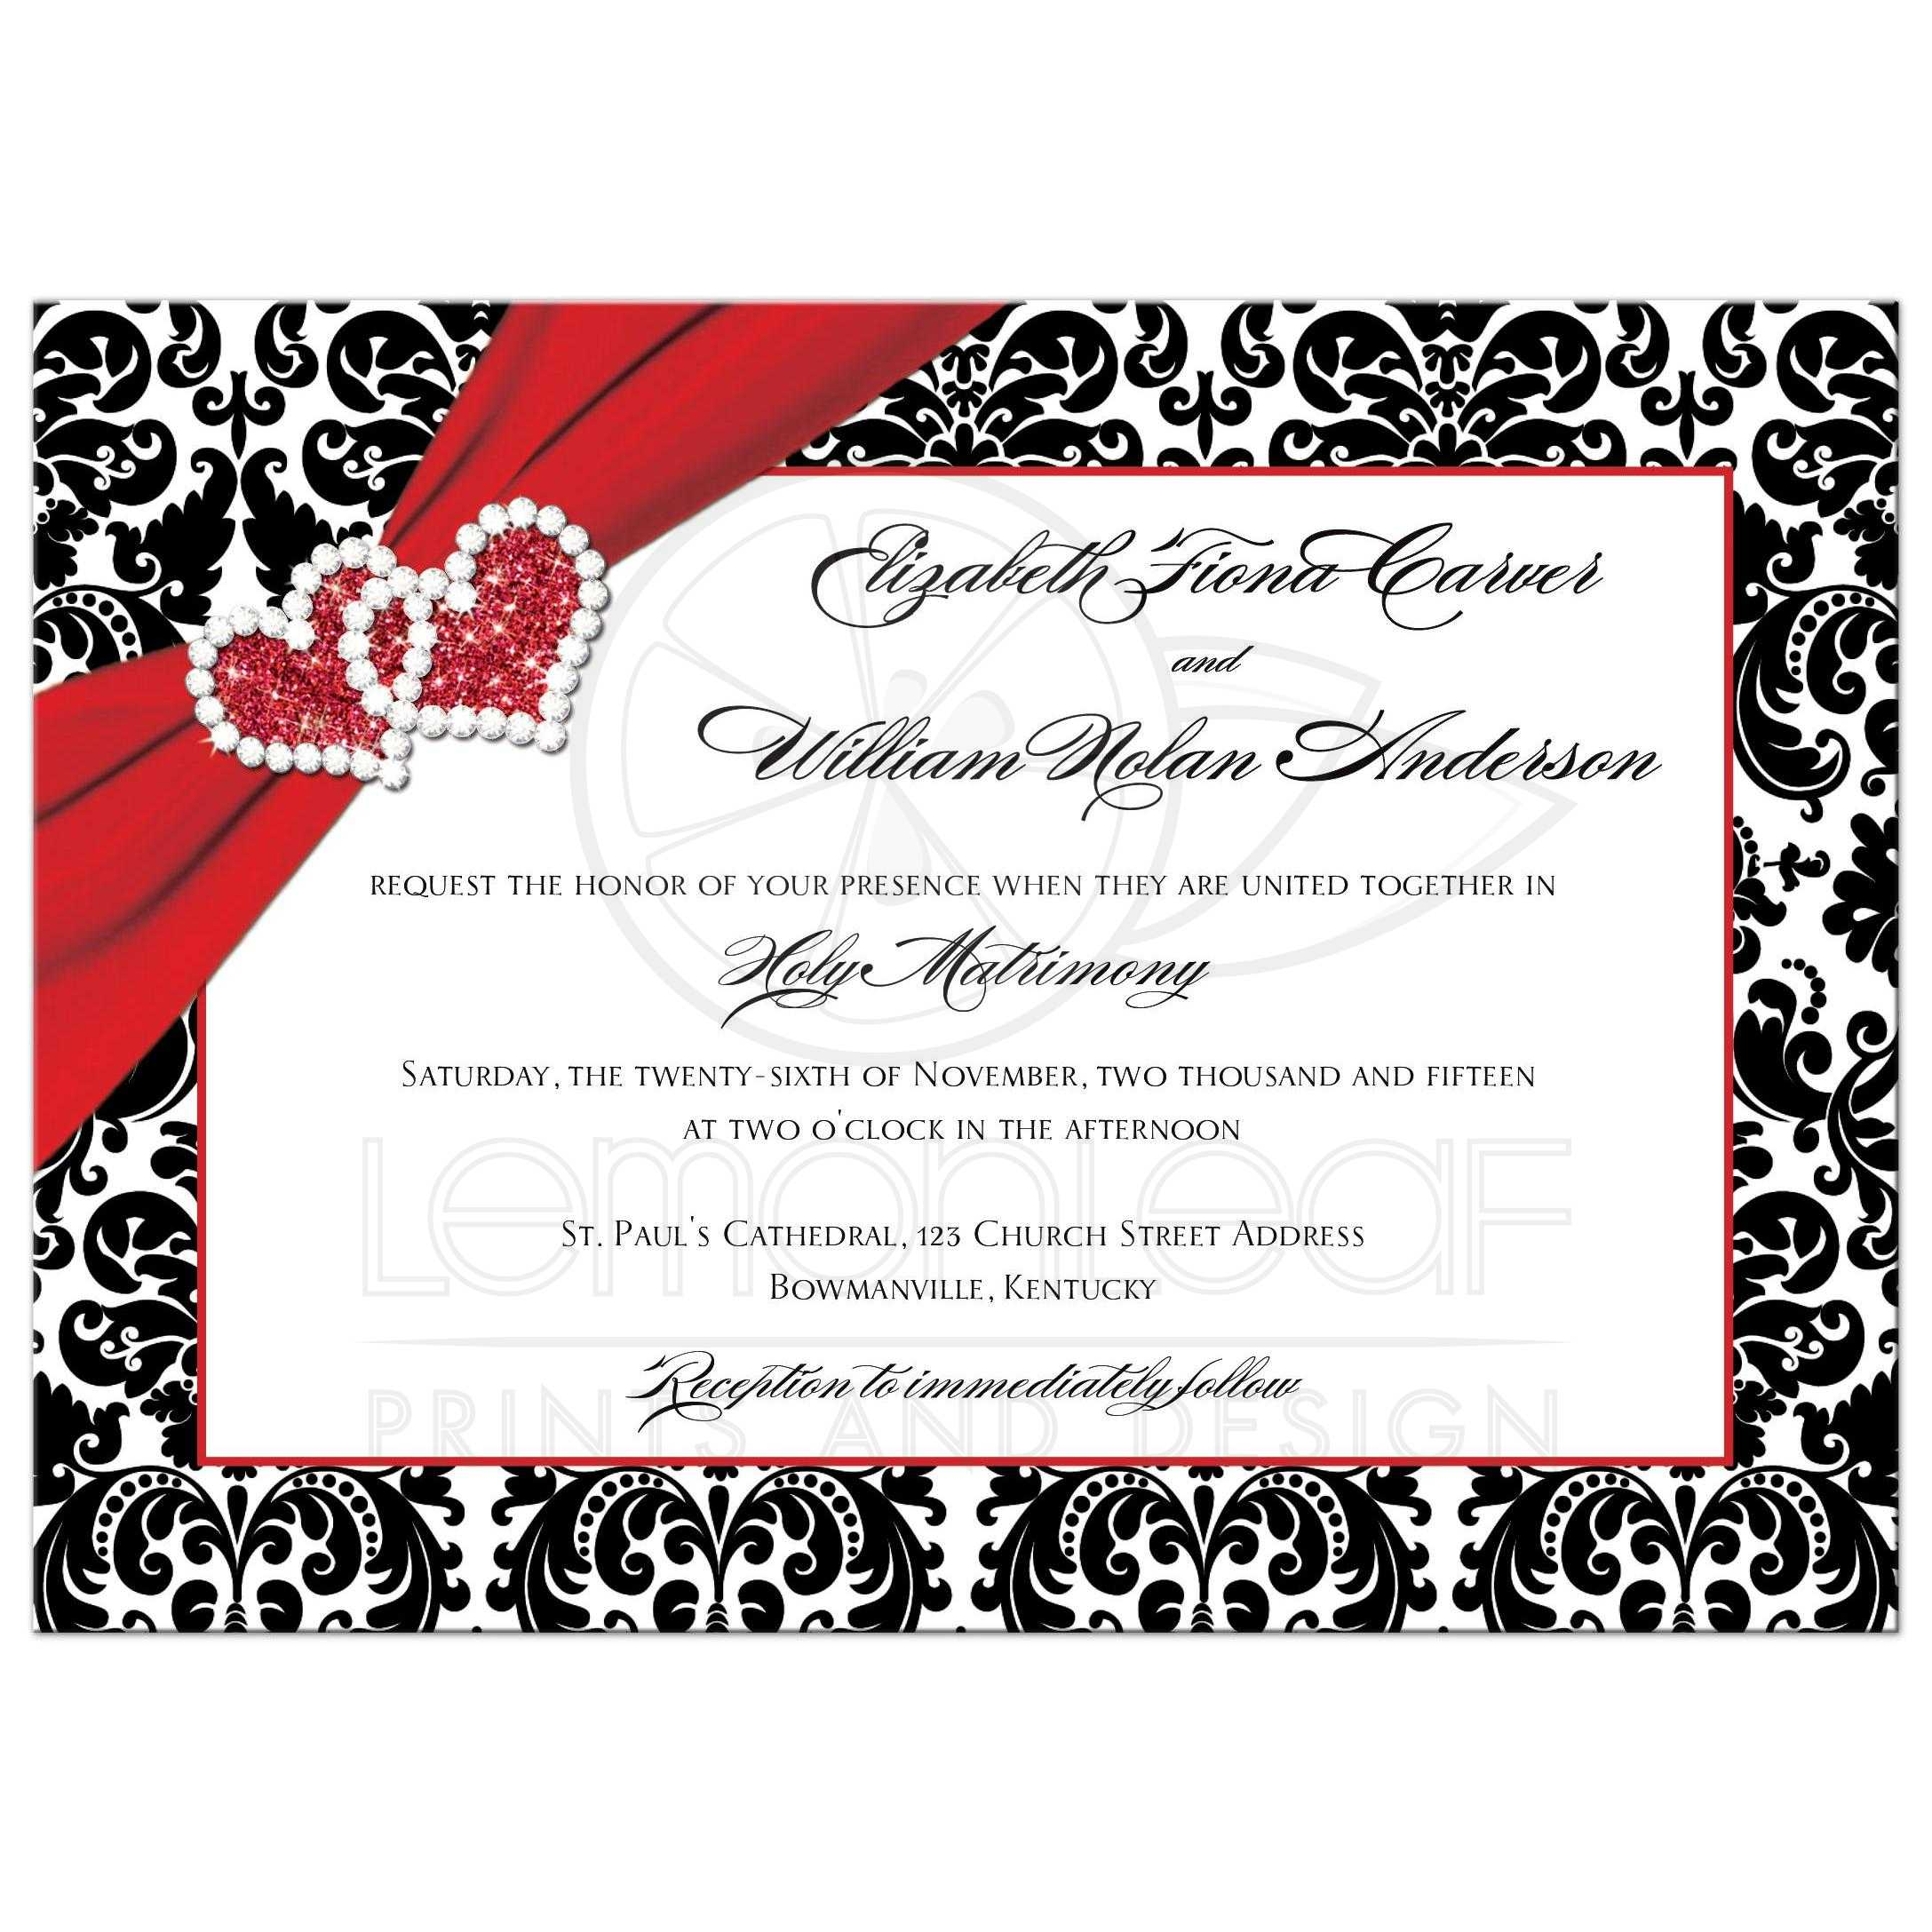 Wedding Invitation   Black, Red, White Damask   Joined Hearts 2